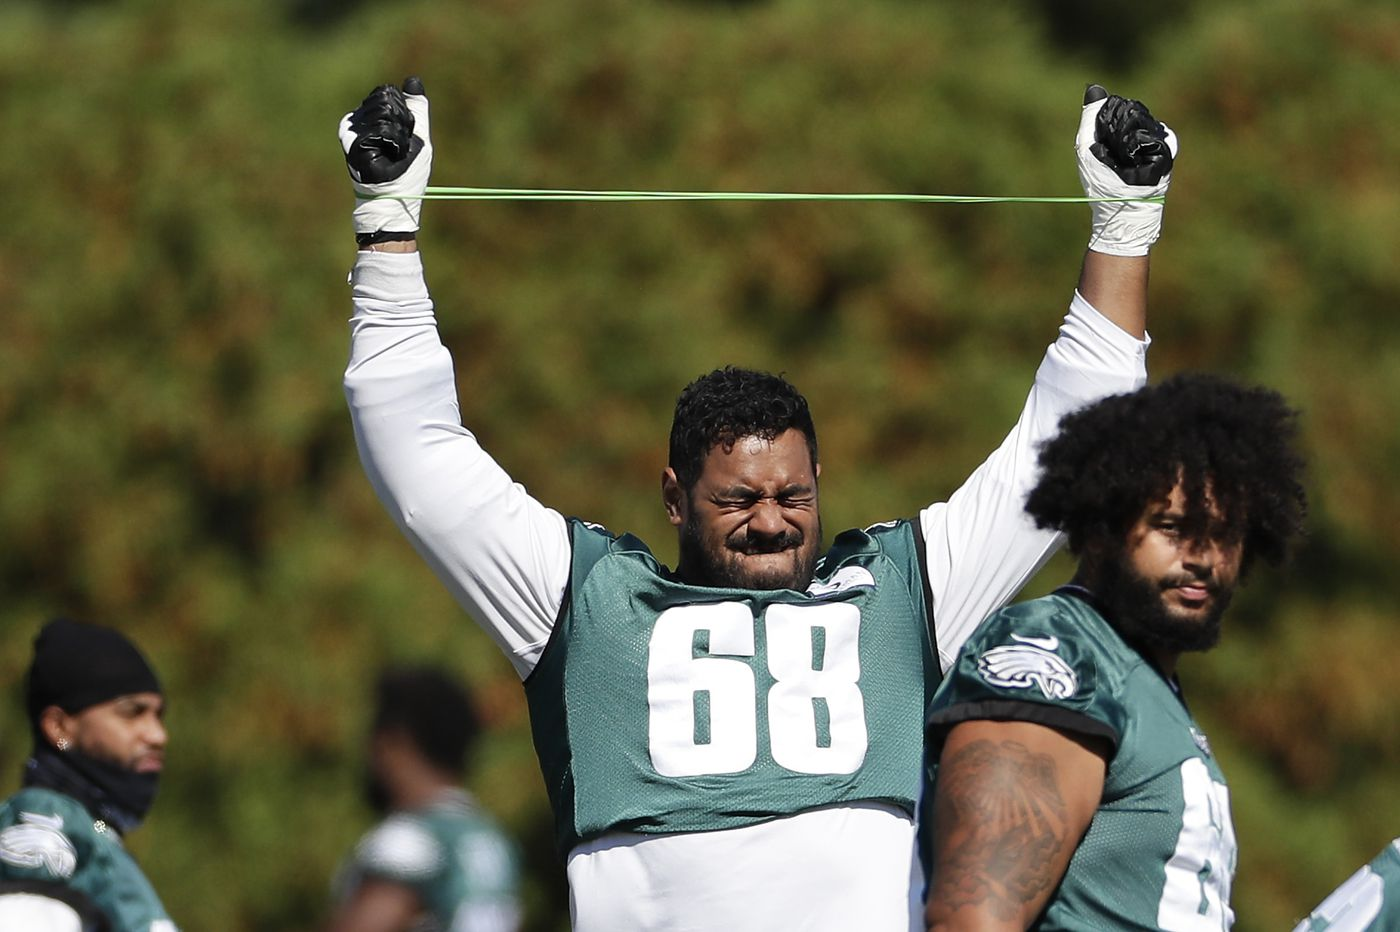 Since leaving Australia, Eagles' Jordan Mailata has plenty of chances to sink, but now, 'I'm swimming,' he says